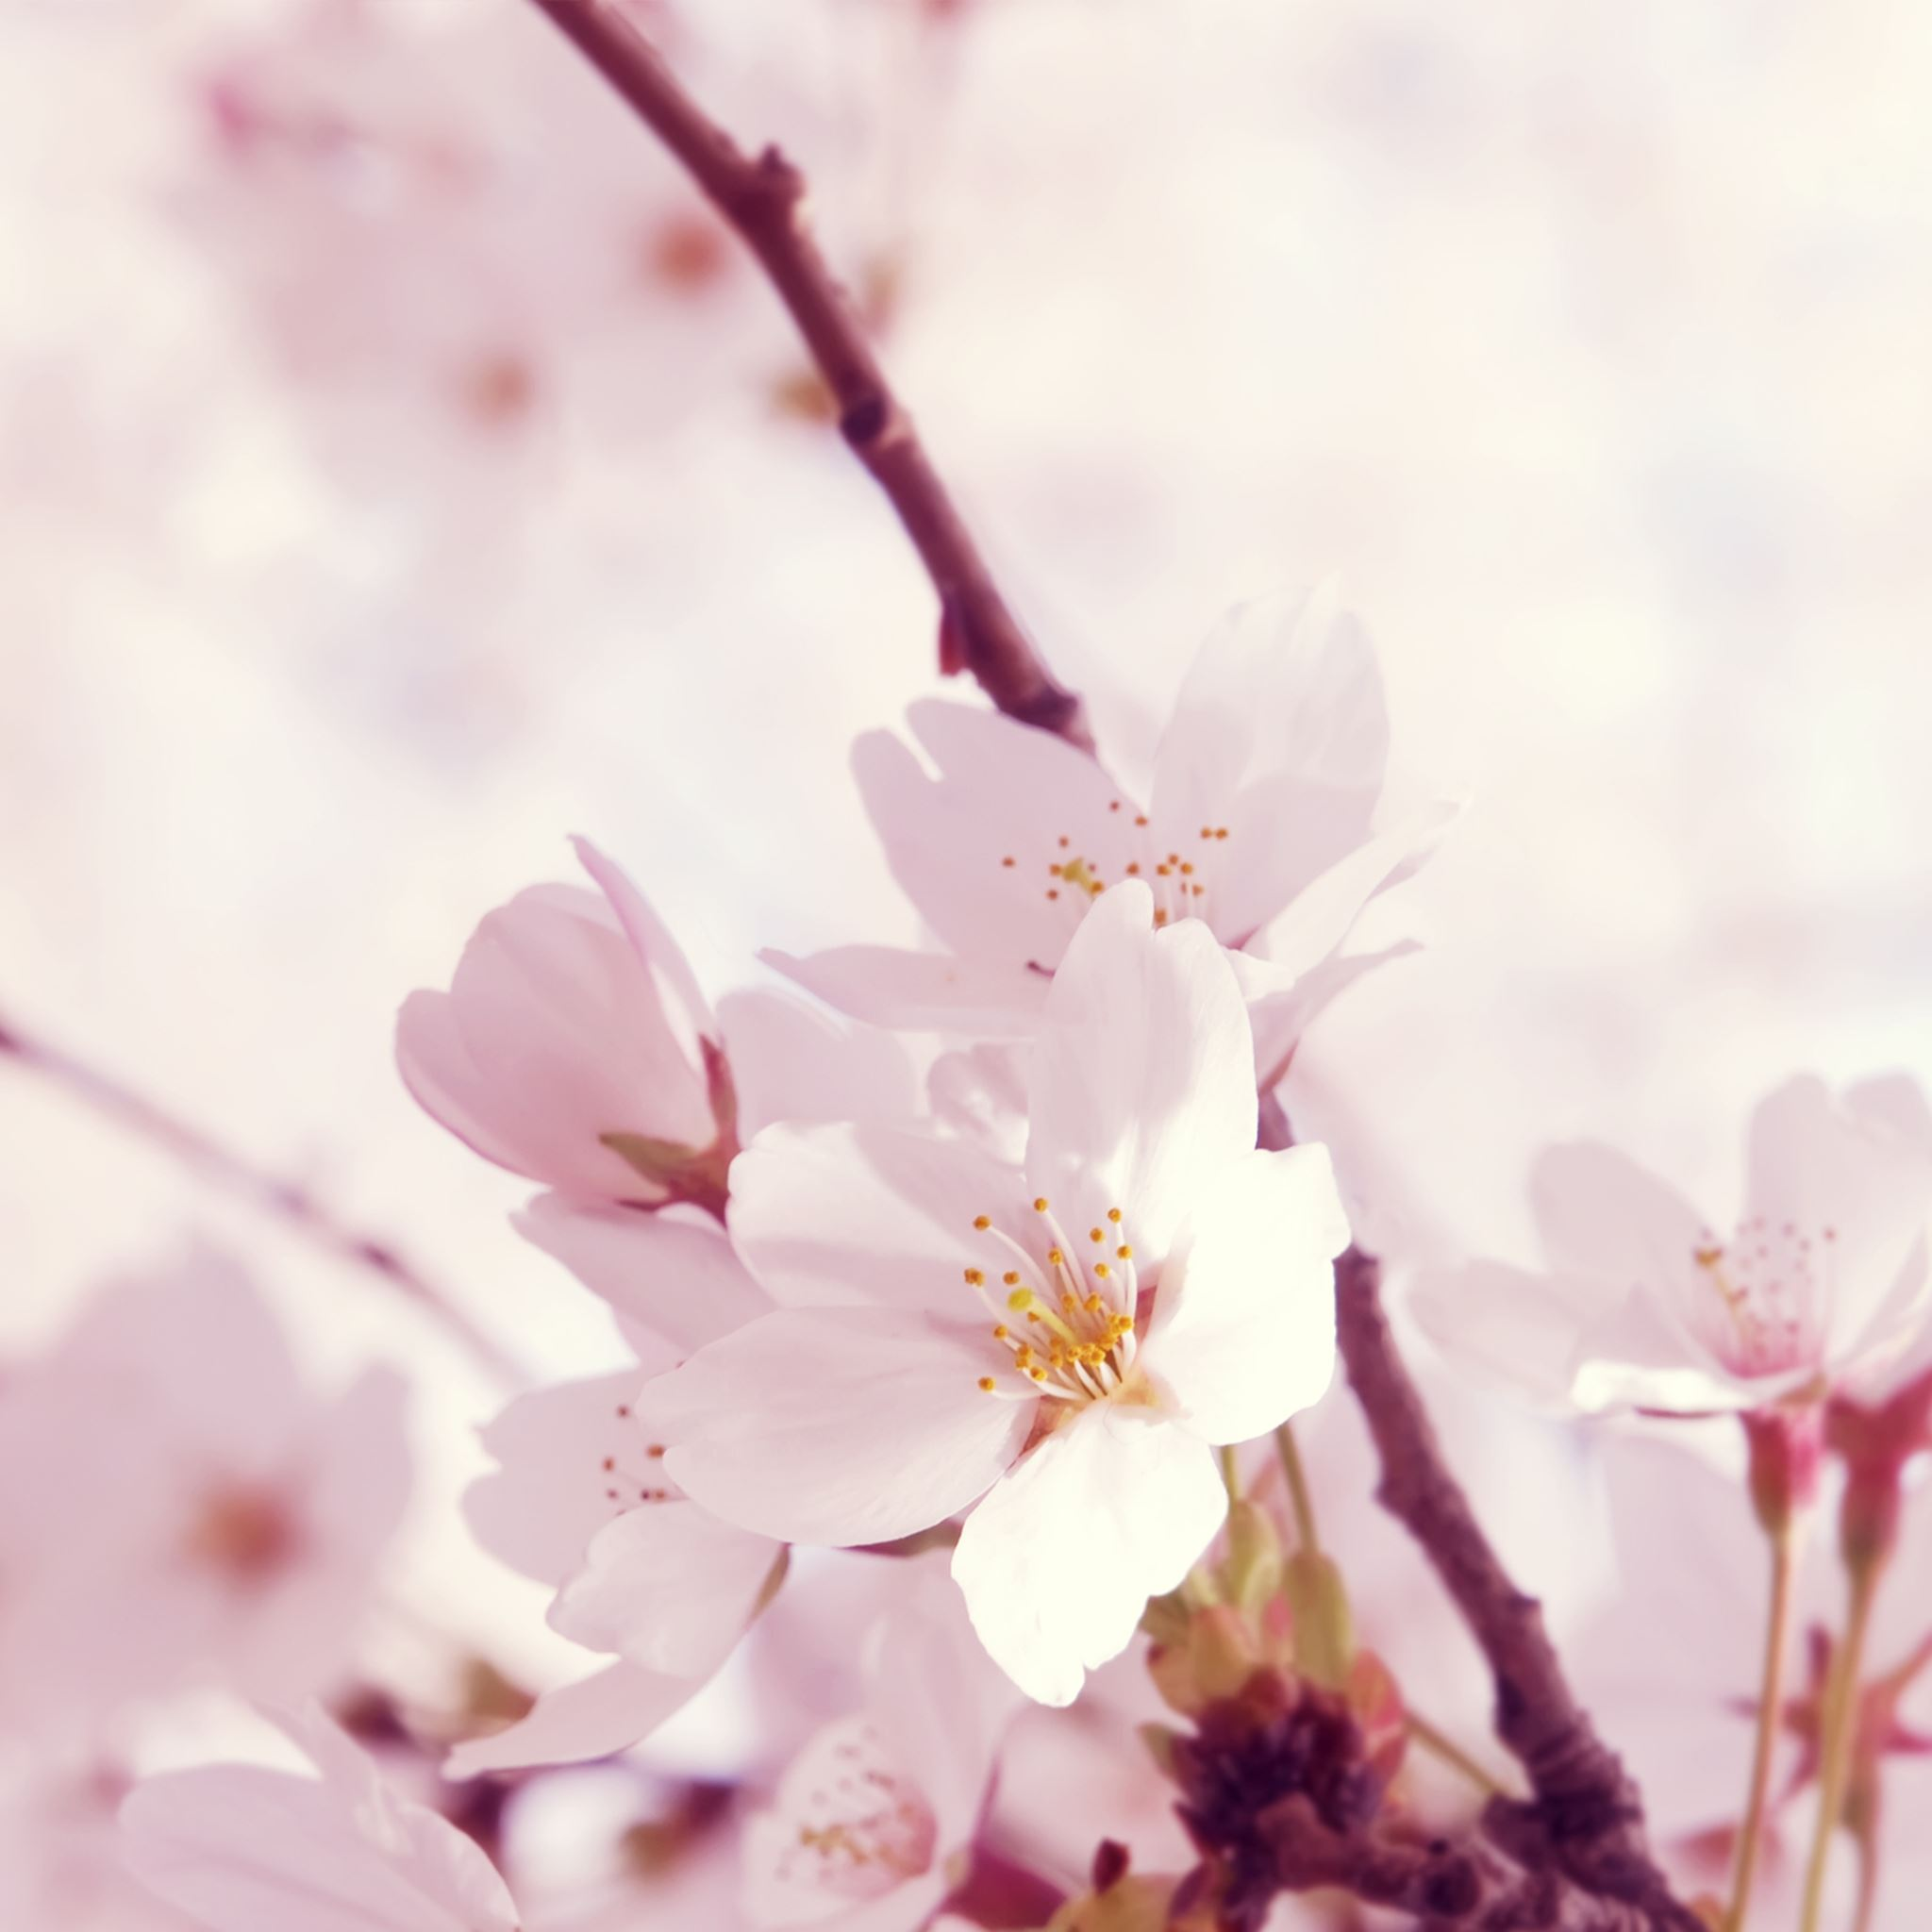 Peach blossom iPad Air wallpaper